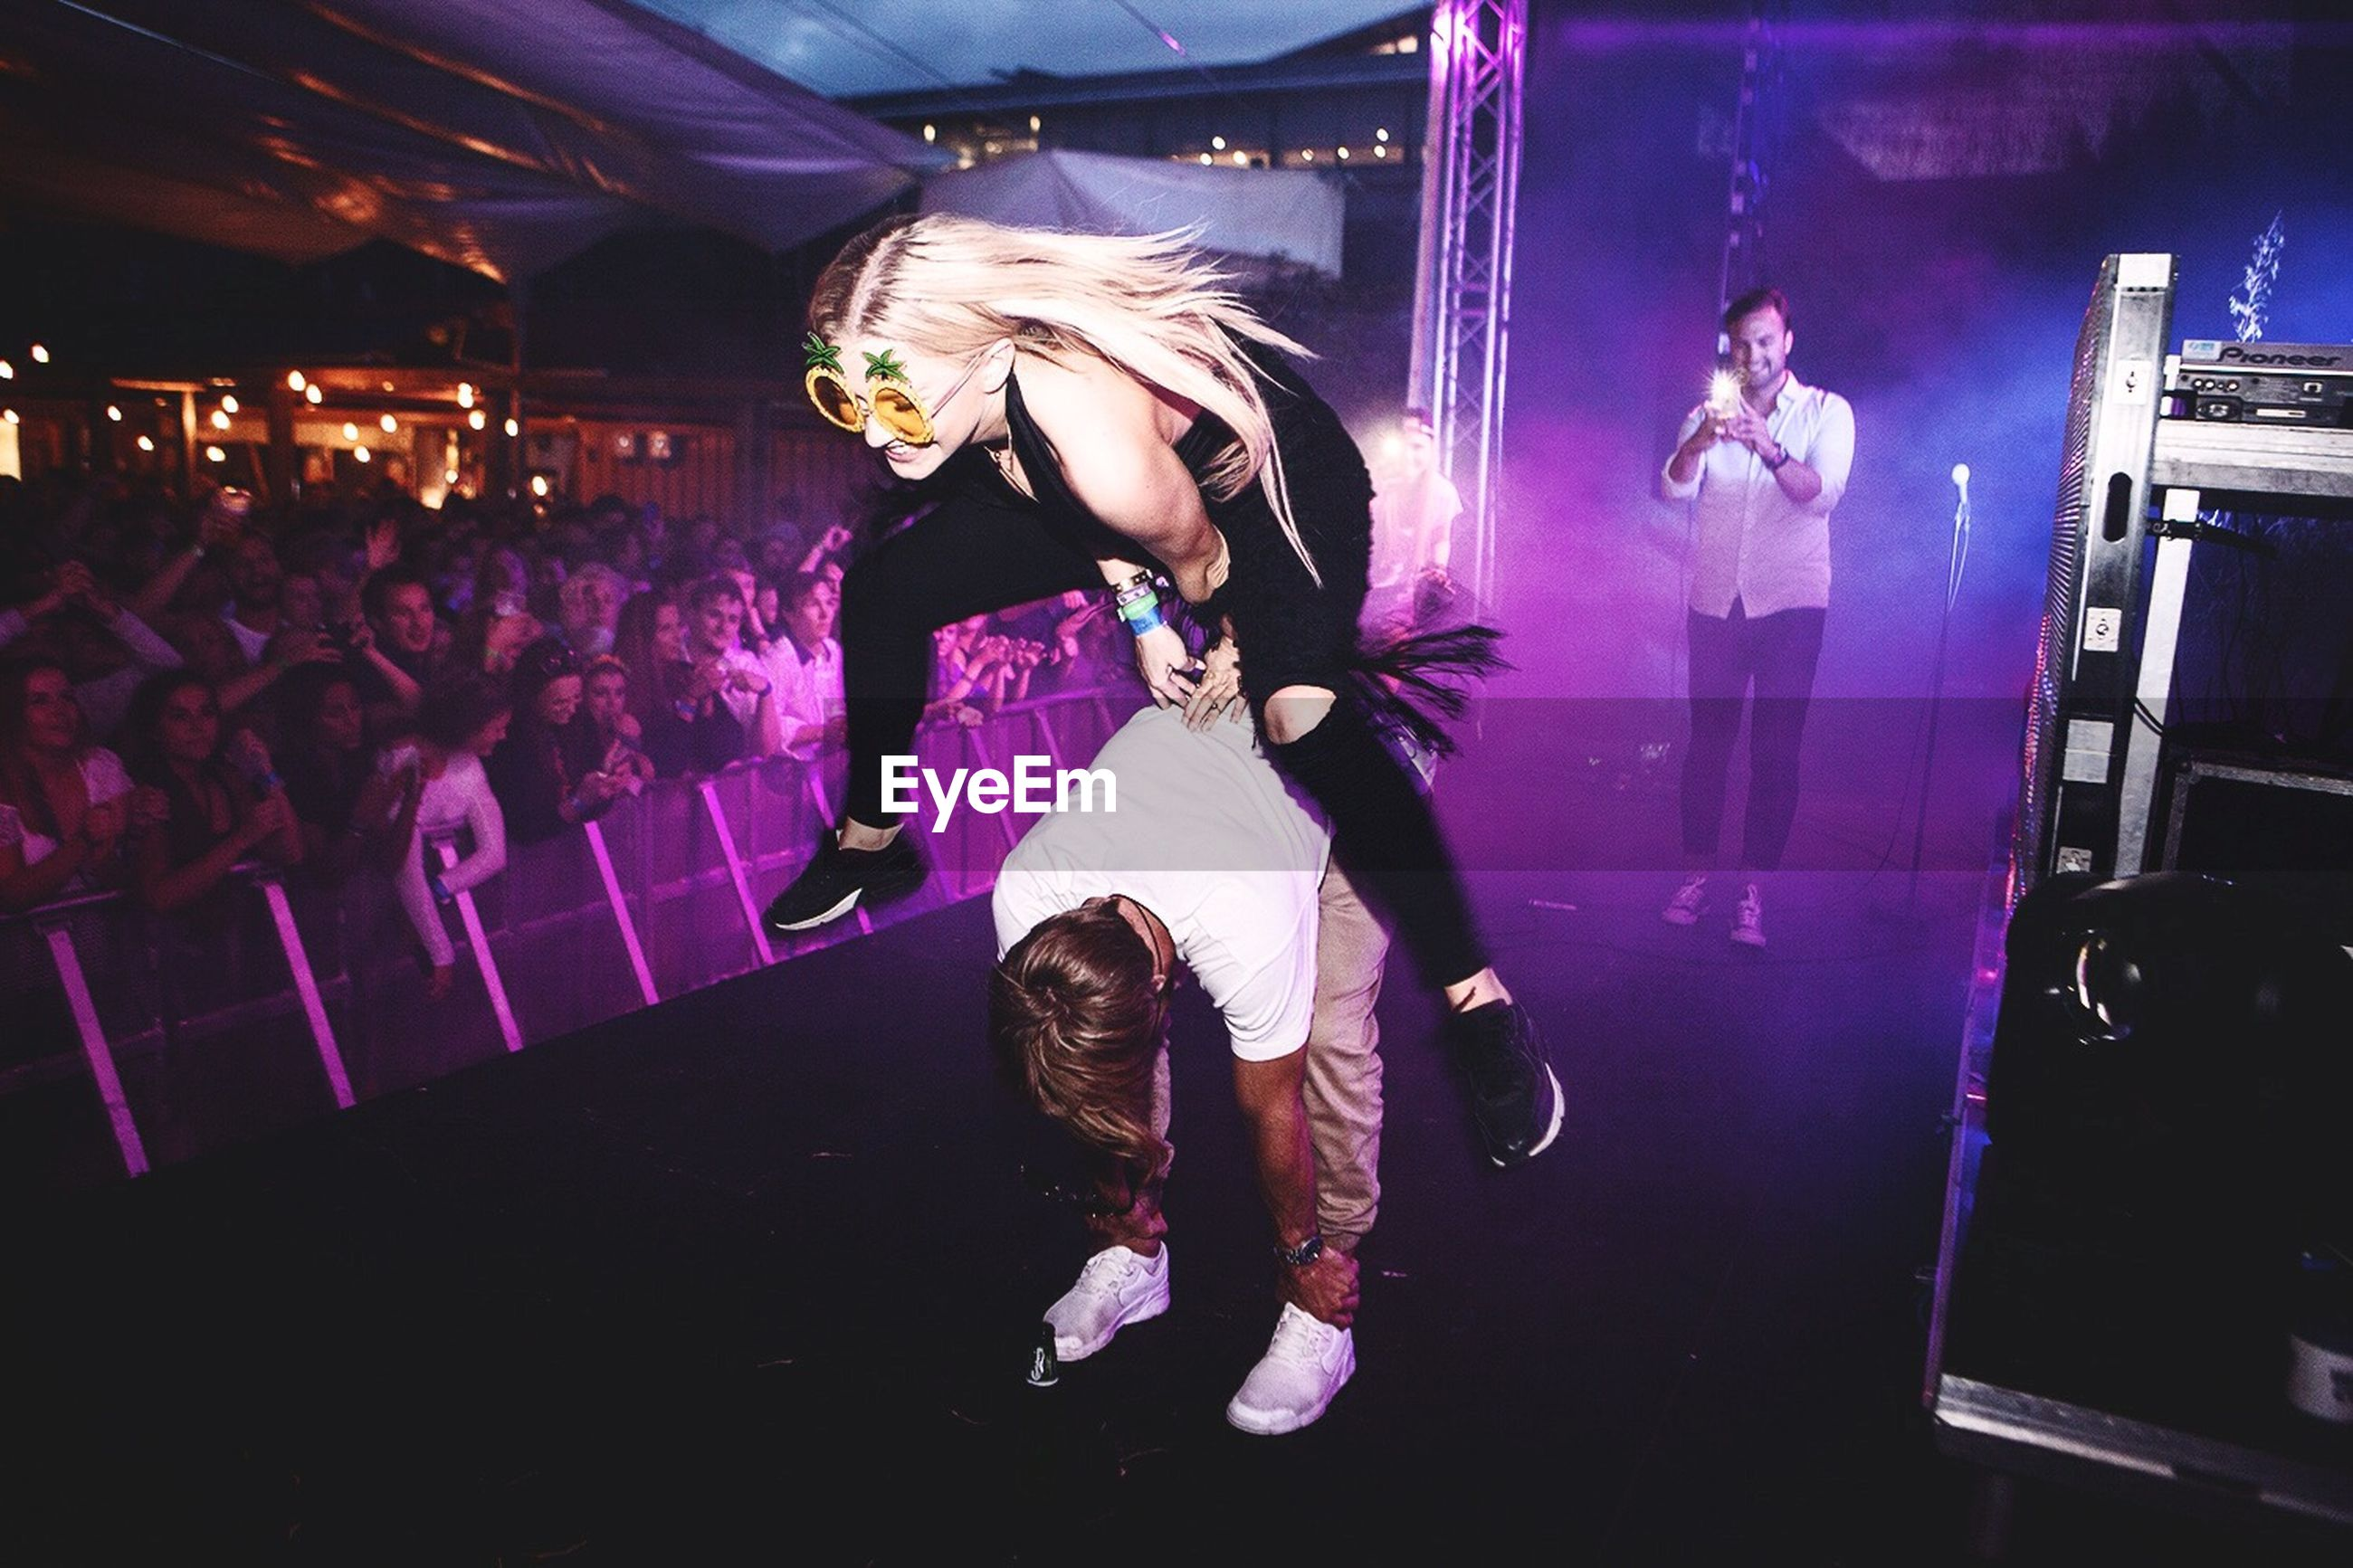 night, illuminated, lifestyles, indoors, arts culture and entertainment, leisure activity, music, performance, enjoyment, men, nightlife, casual clothing, young adult, standing, stage - performance space, holding, full length, event